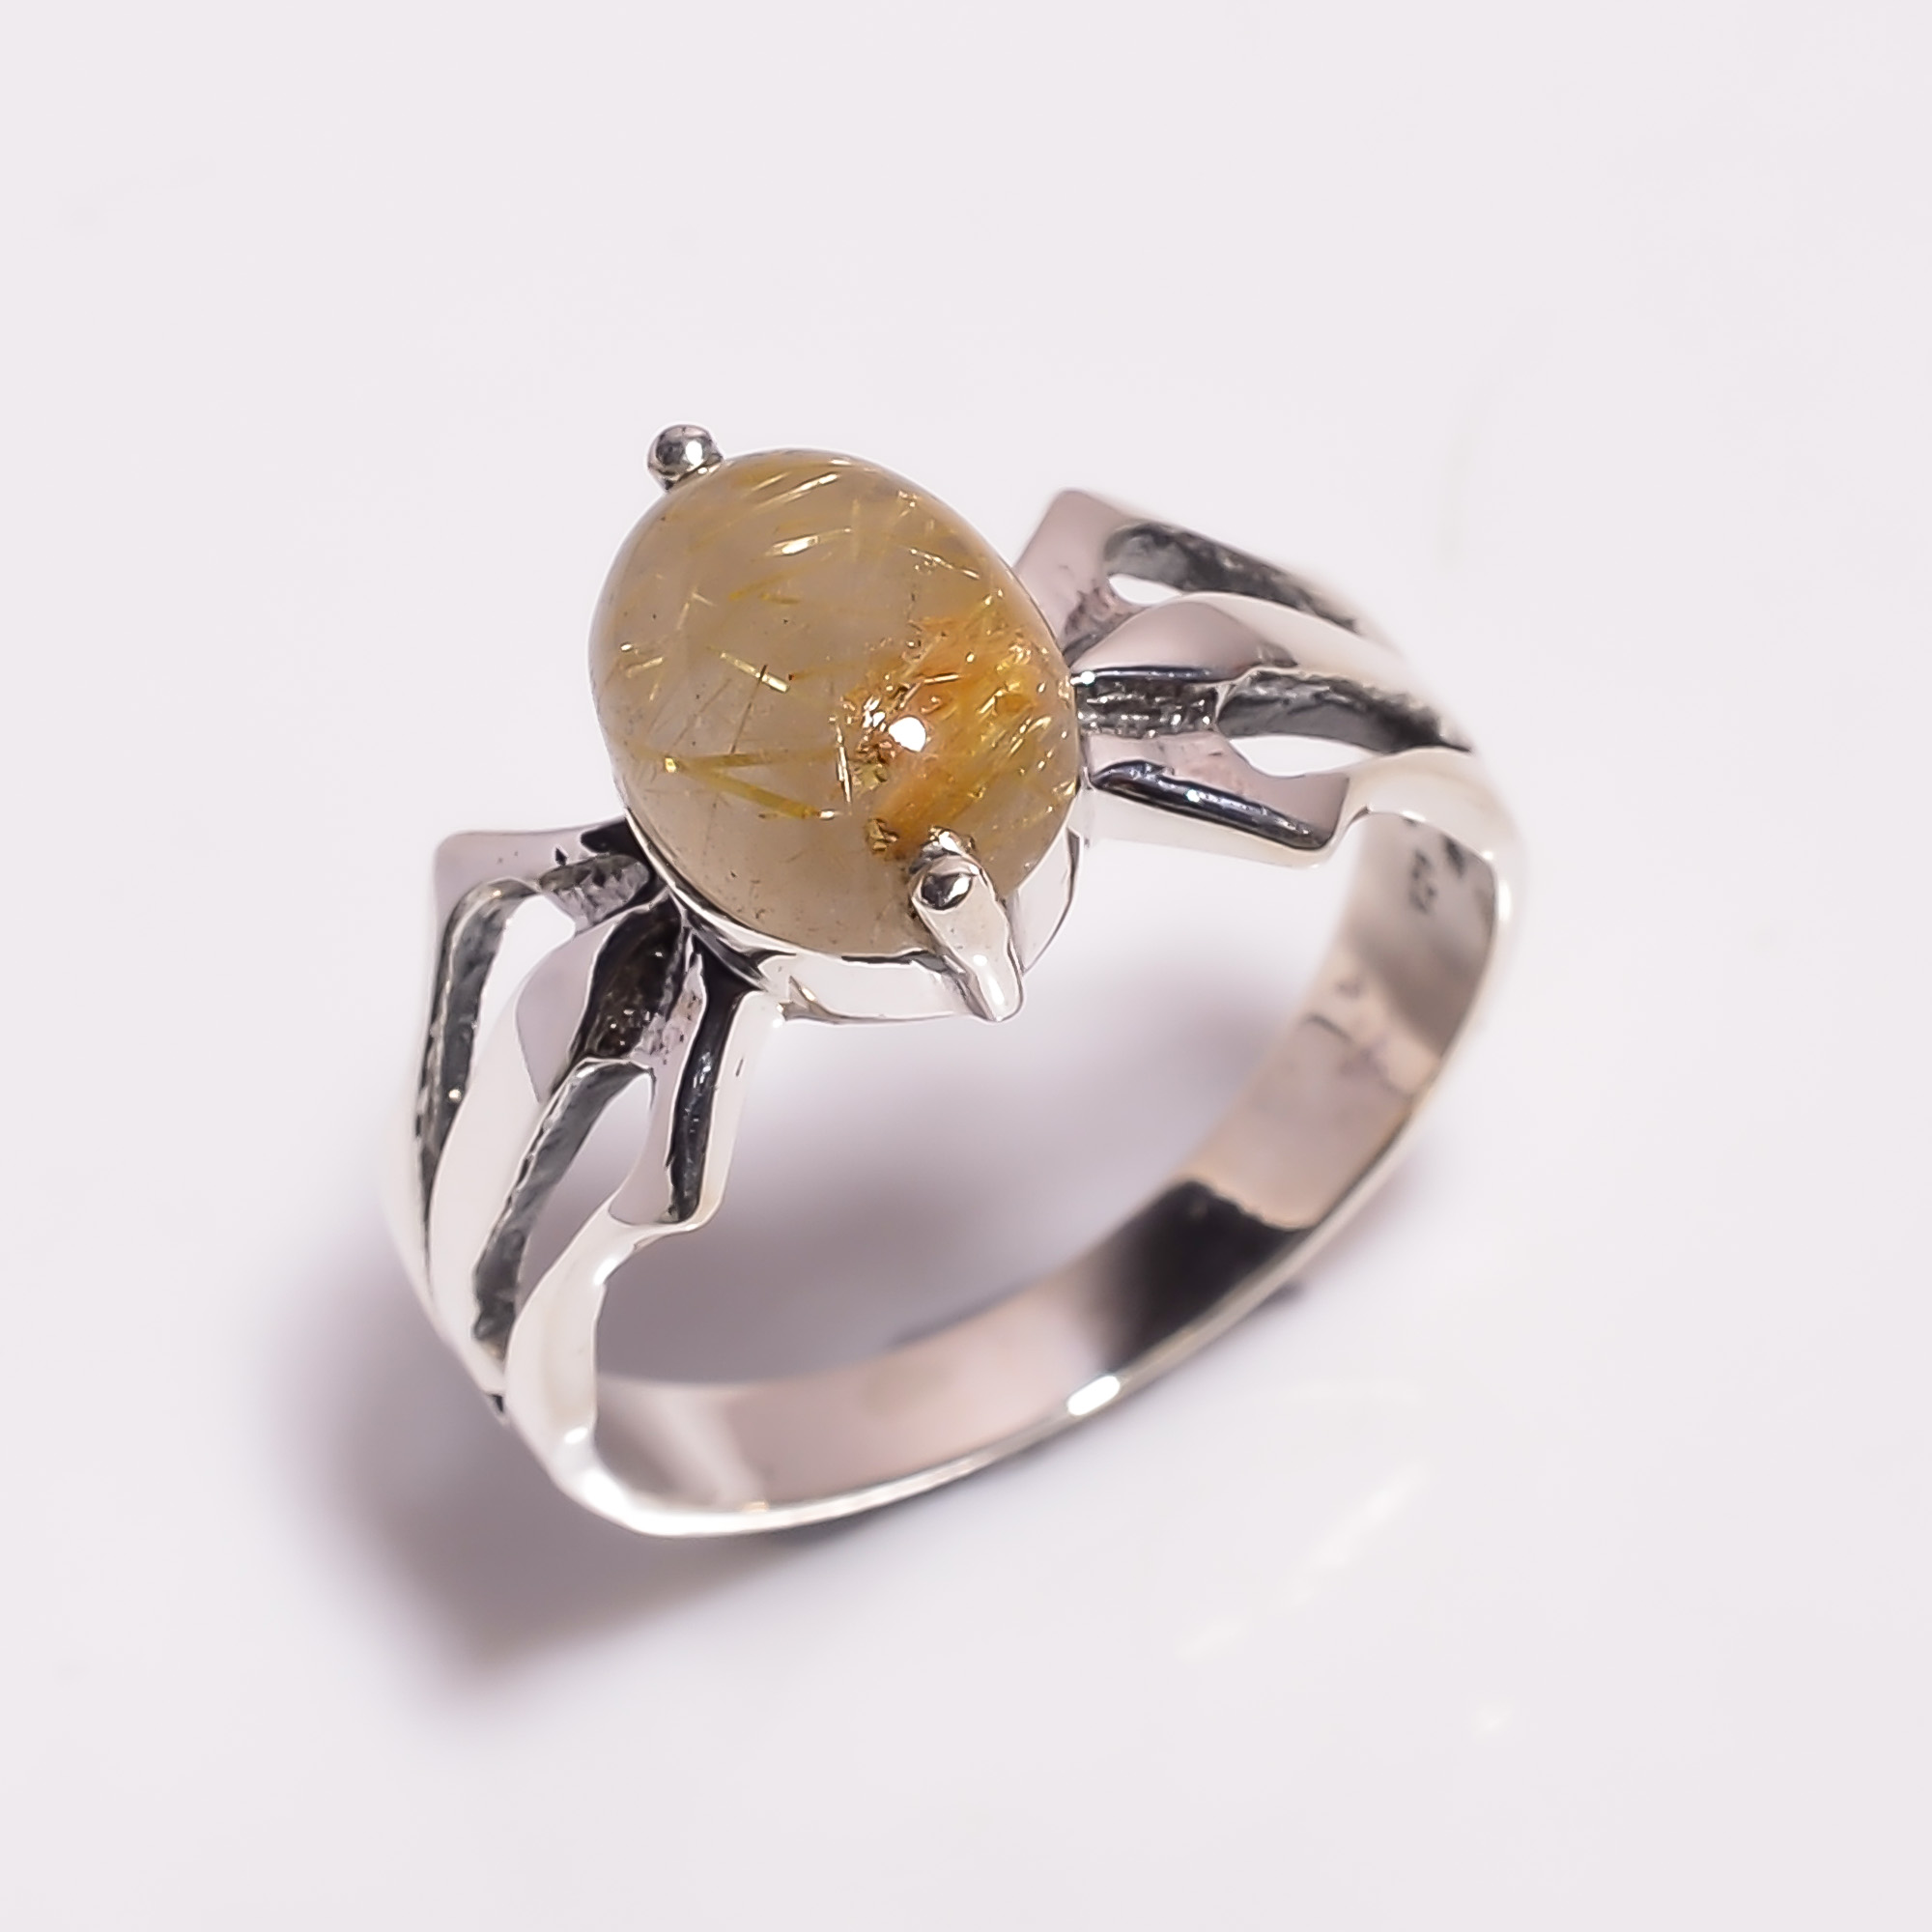 Golden Rutile Gemstone 925 Sterling Silver Ring Size US 7